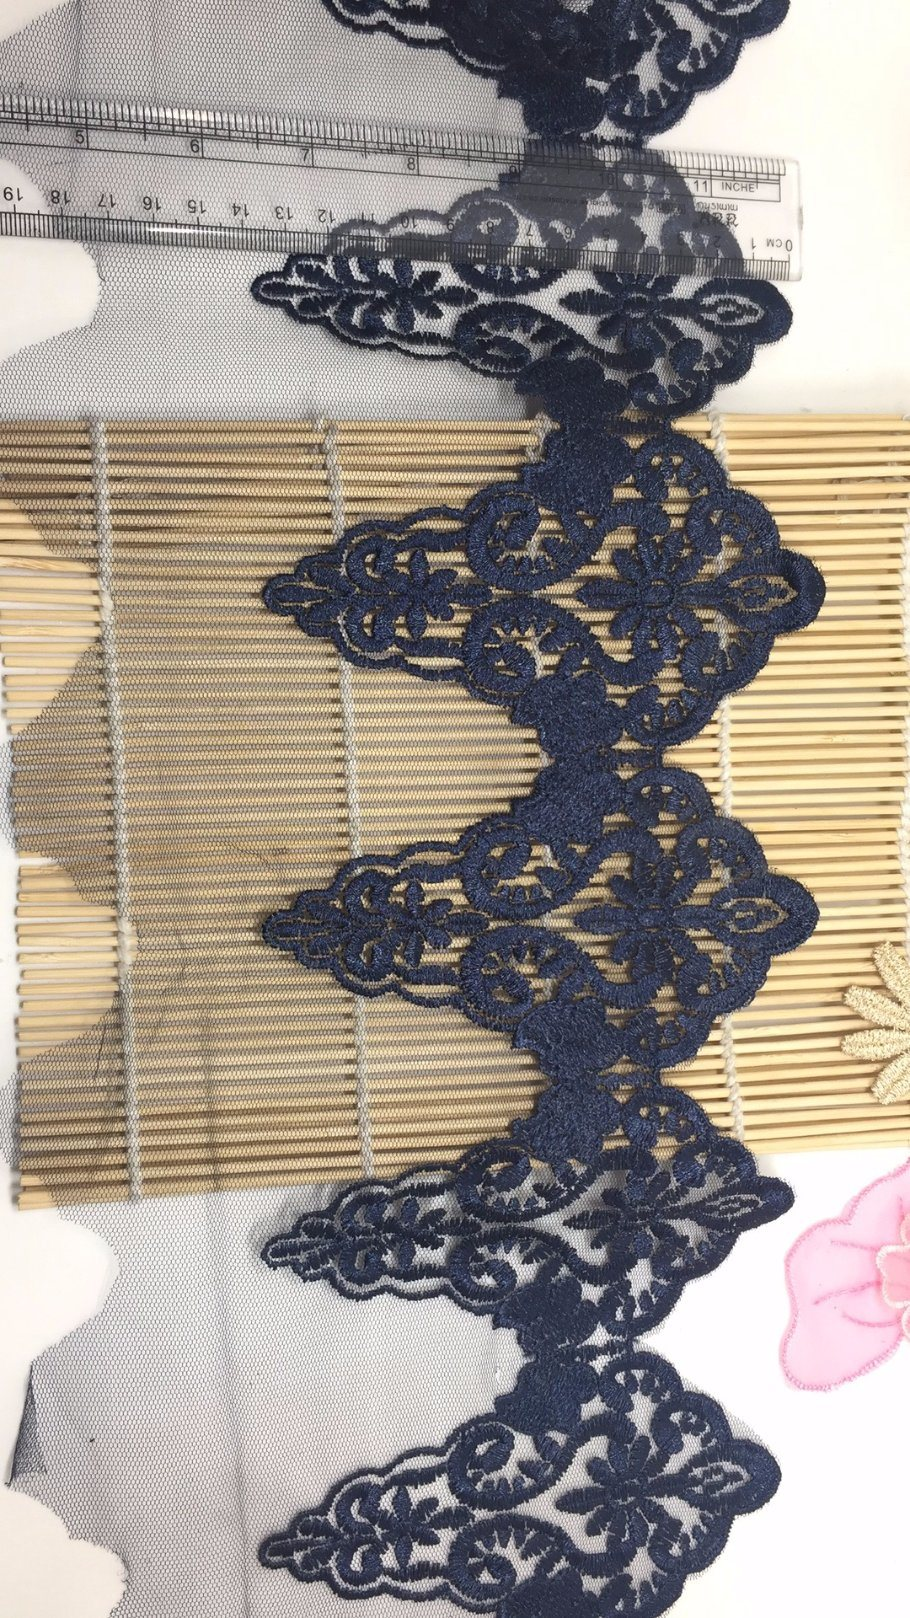 New Arrival 20cm Width Embroidery Trimming Net Lace for Garments & Home Textiles & Curtains Factory Stock Big Sale